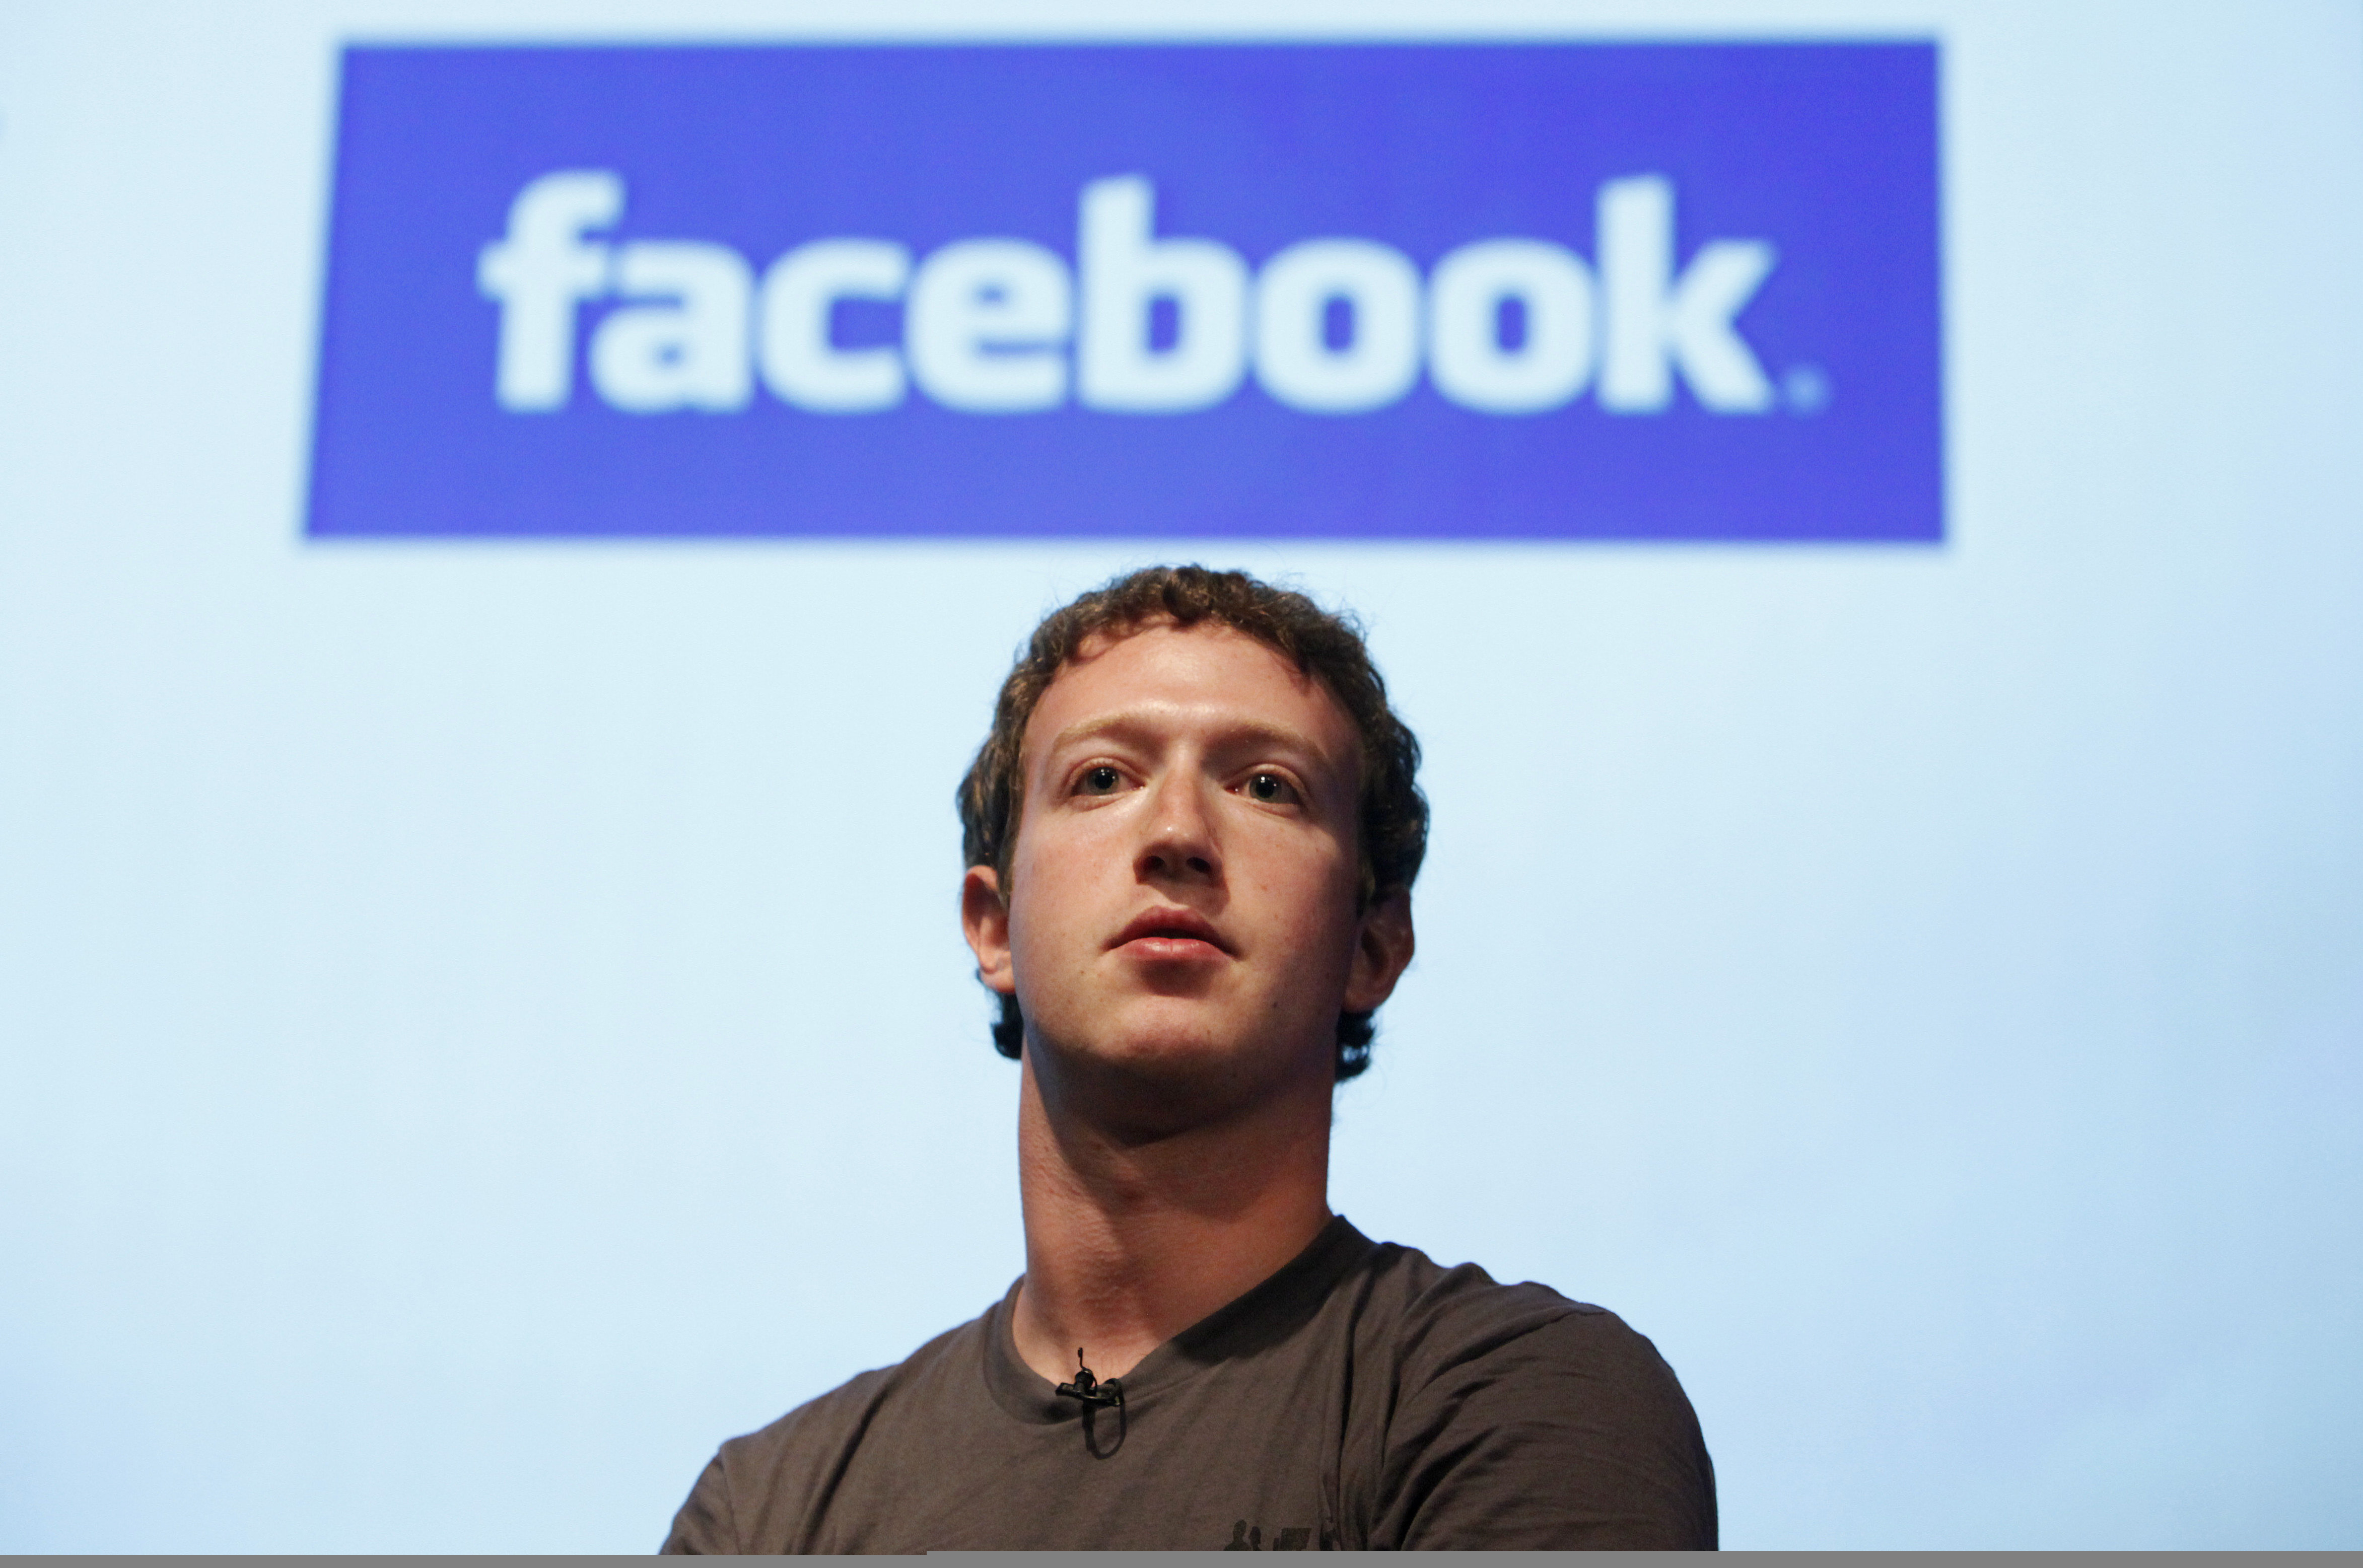 T ZUCKERBERG AP Mark Zuckerberg could owe $1 billion in taxes